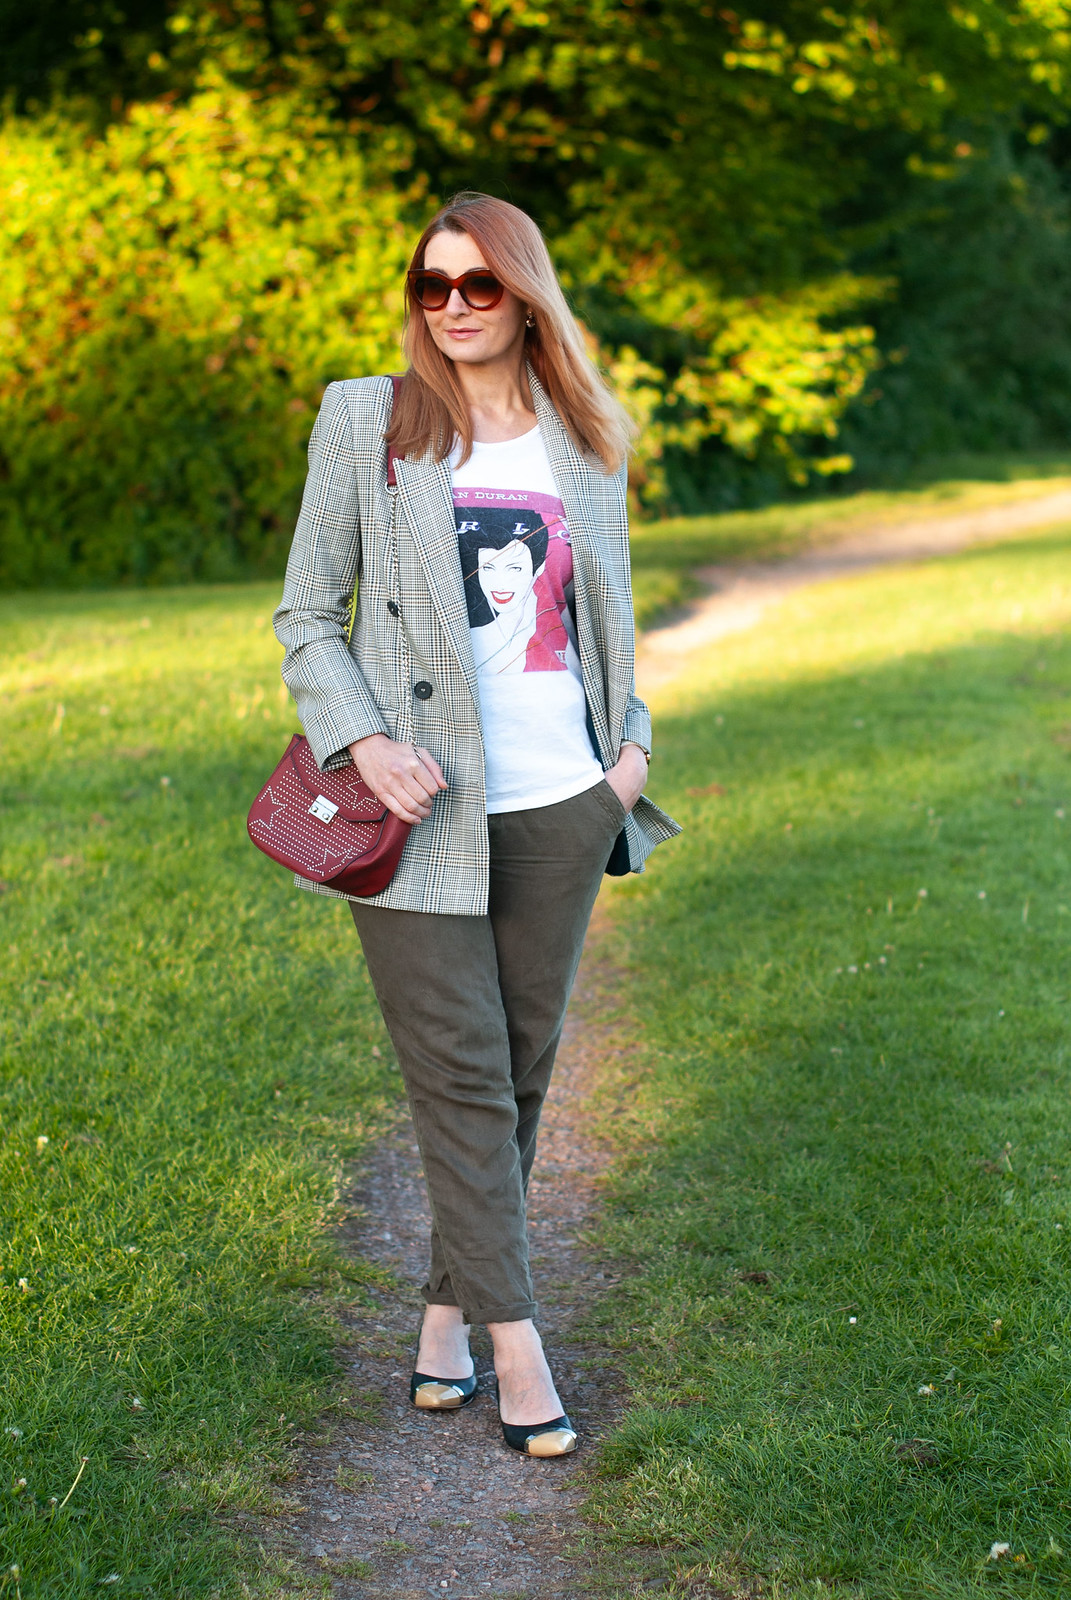 A Smart Casual Way to Style a Graphic T-shirt \ Duran Duran t-shirt \ Prince of Wales check blazer \ pointed flats \ baggy chinos | Not Dressed As Lamb, over 40 style